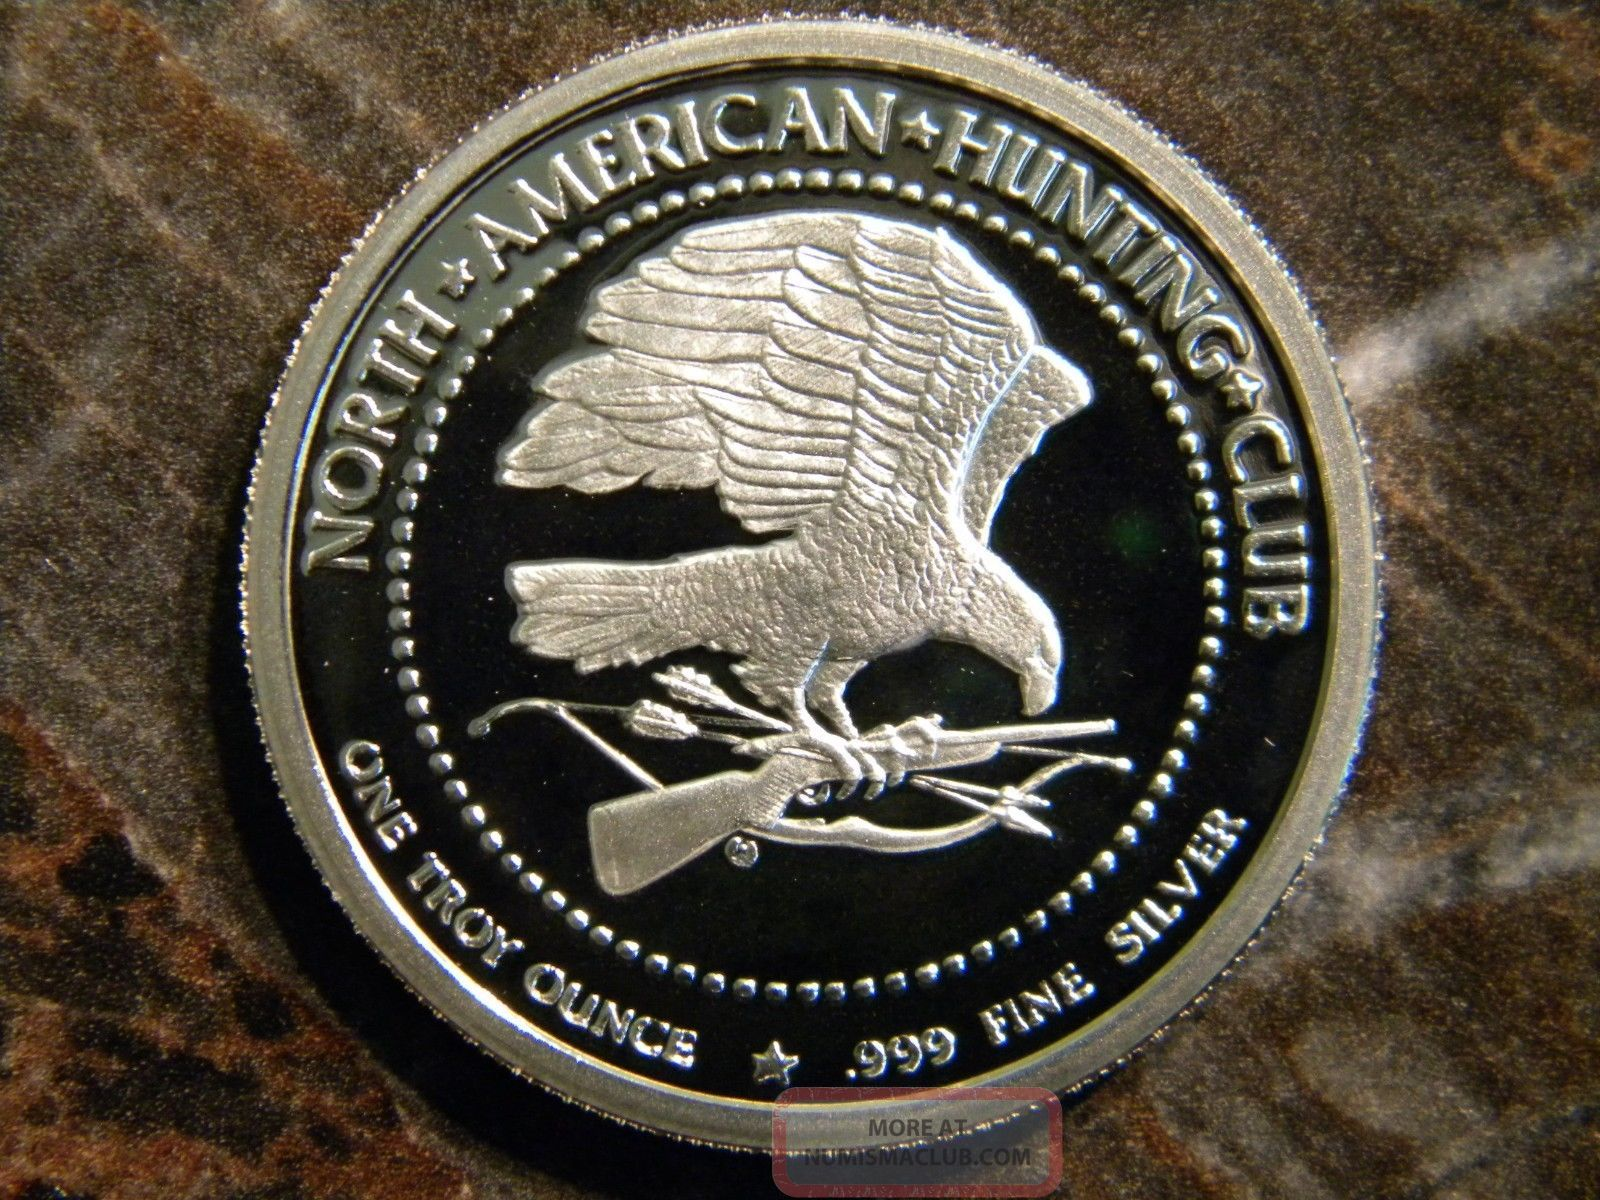 north american hunting club 30th anniversary coin